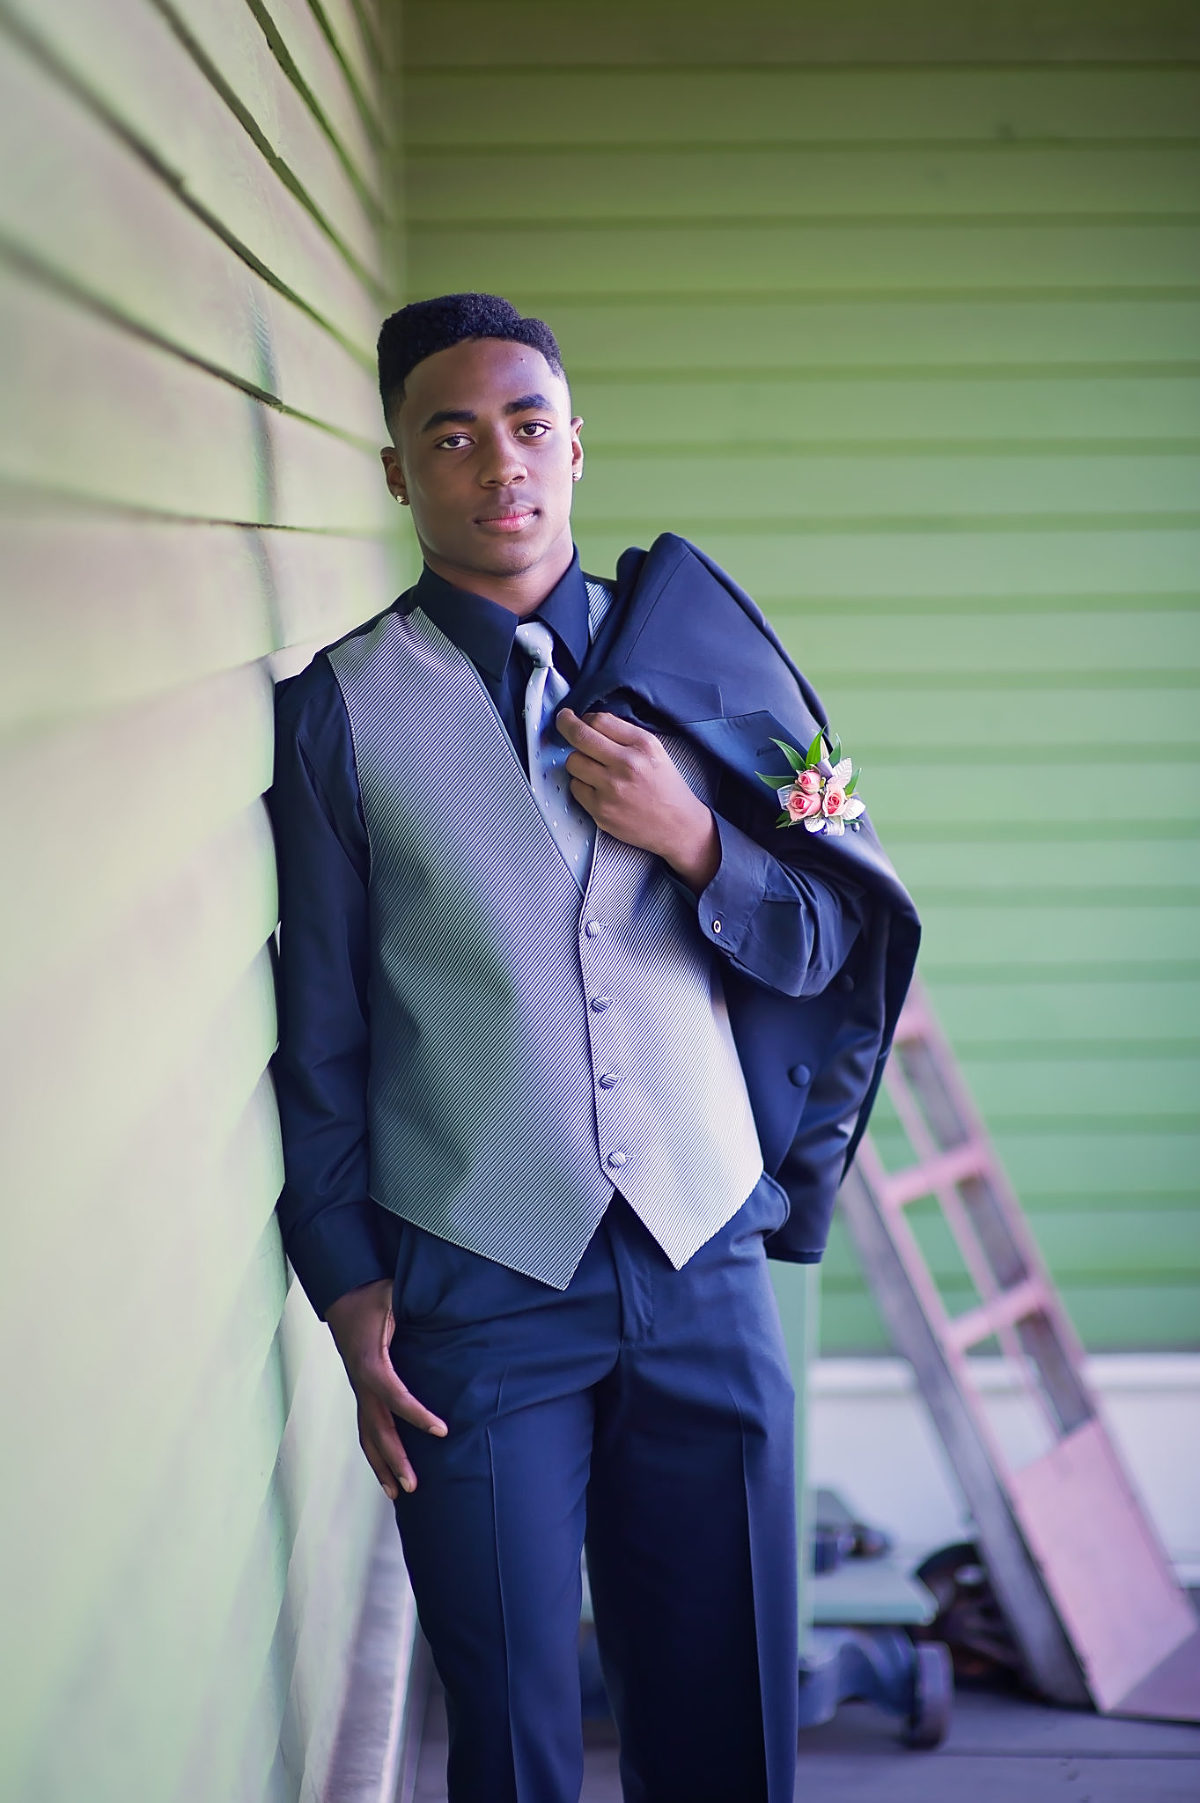 young black man posing in a suit